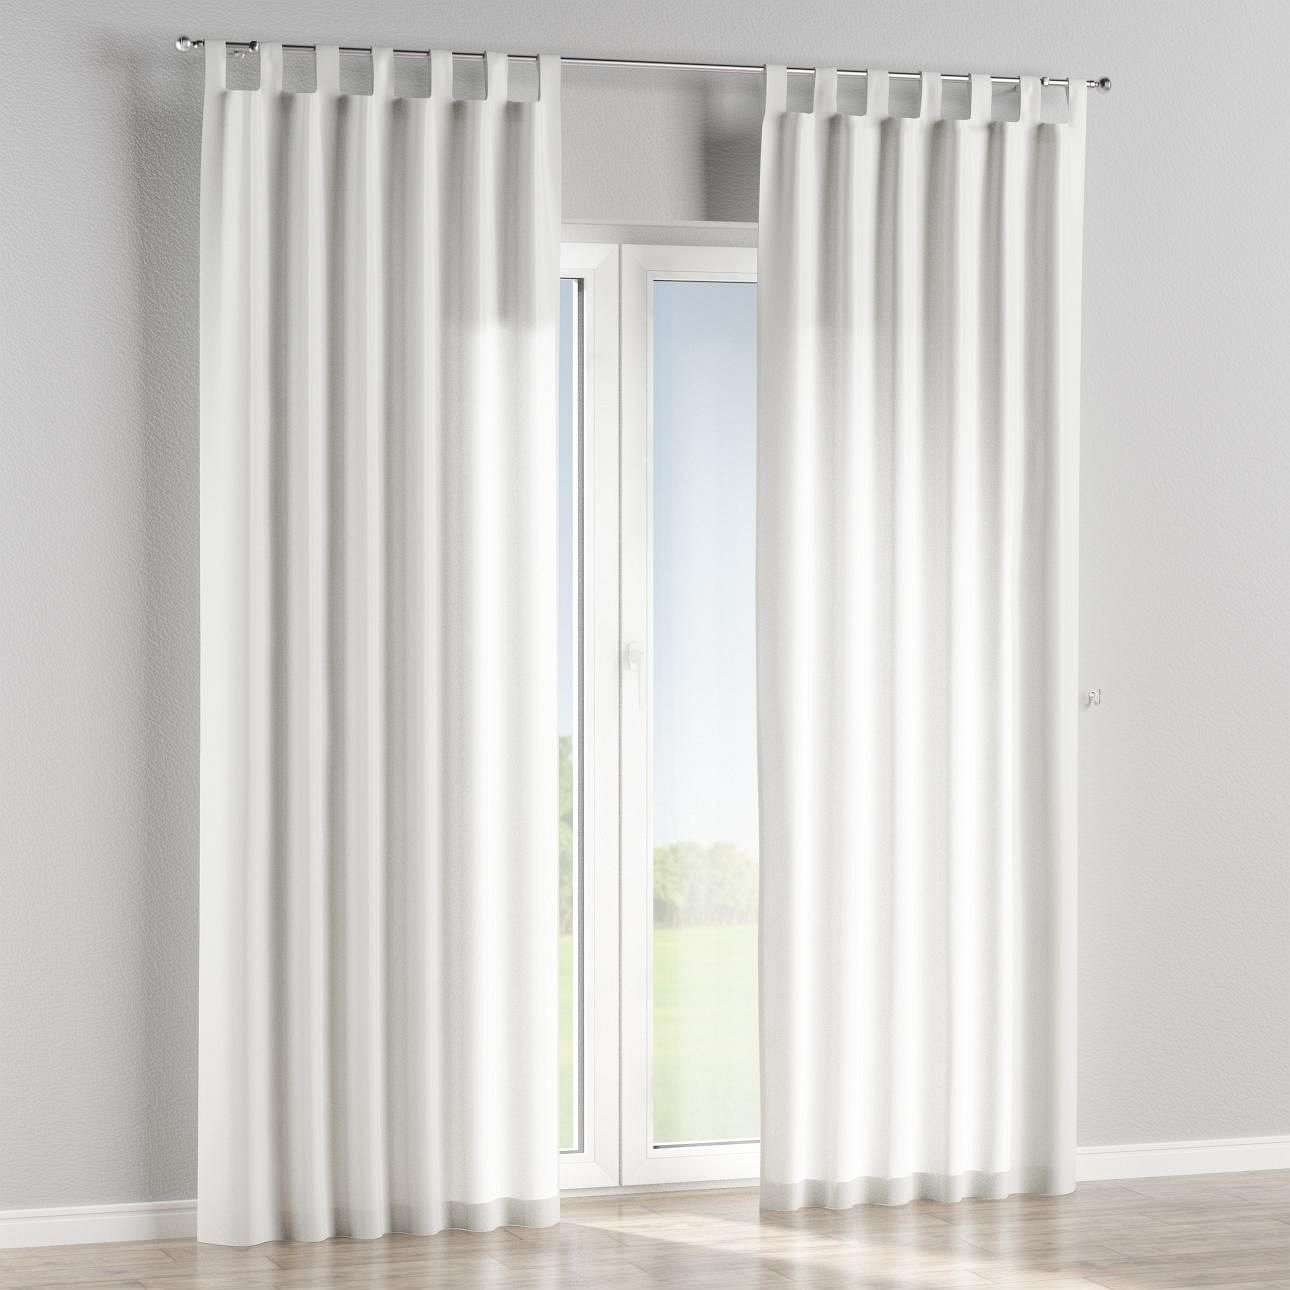 Tab top lined curtains in collection Nordic, fabric: 630-08